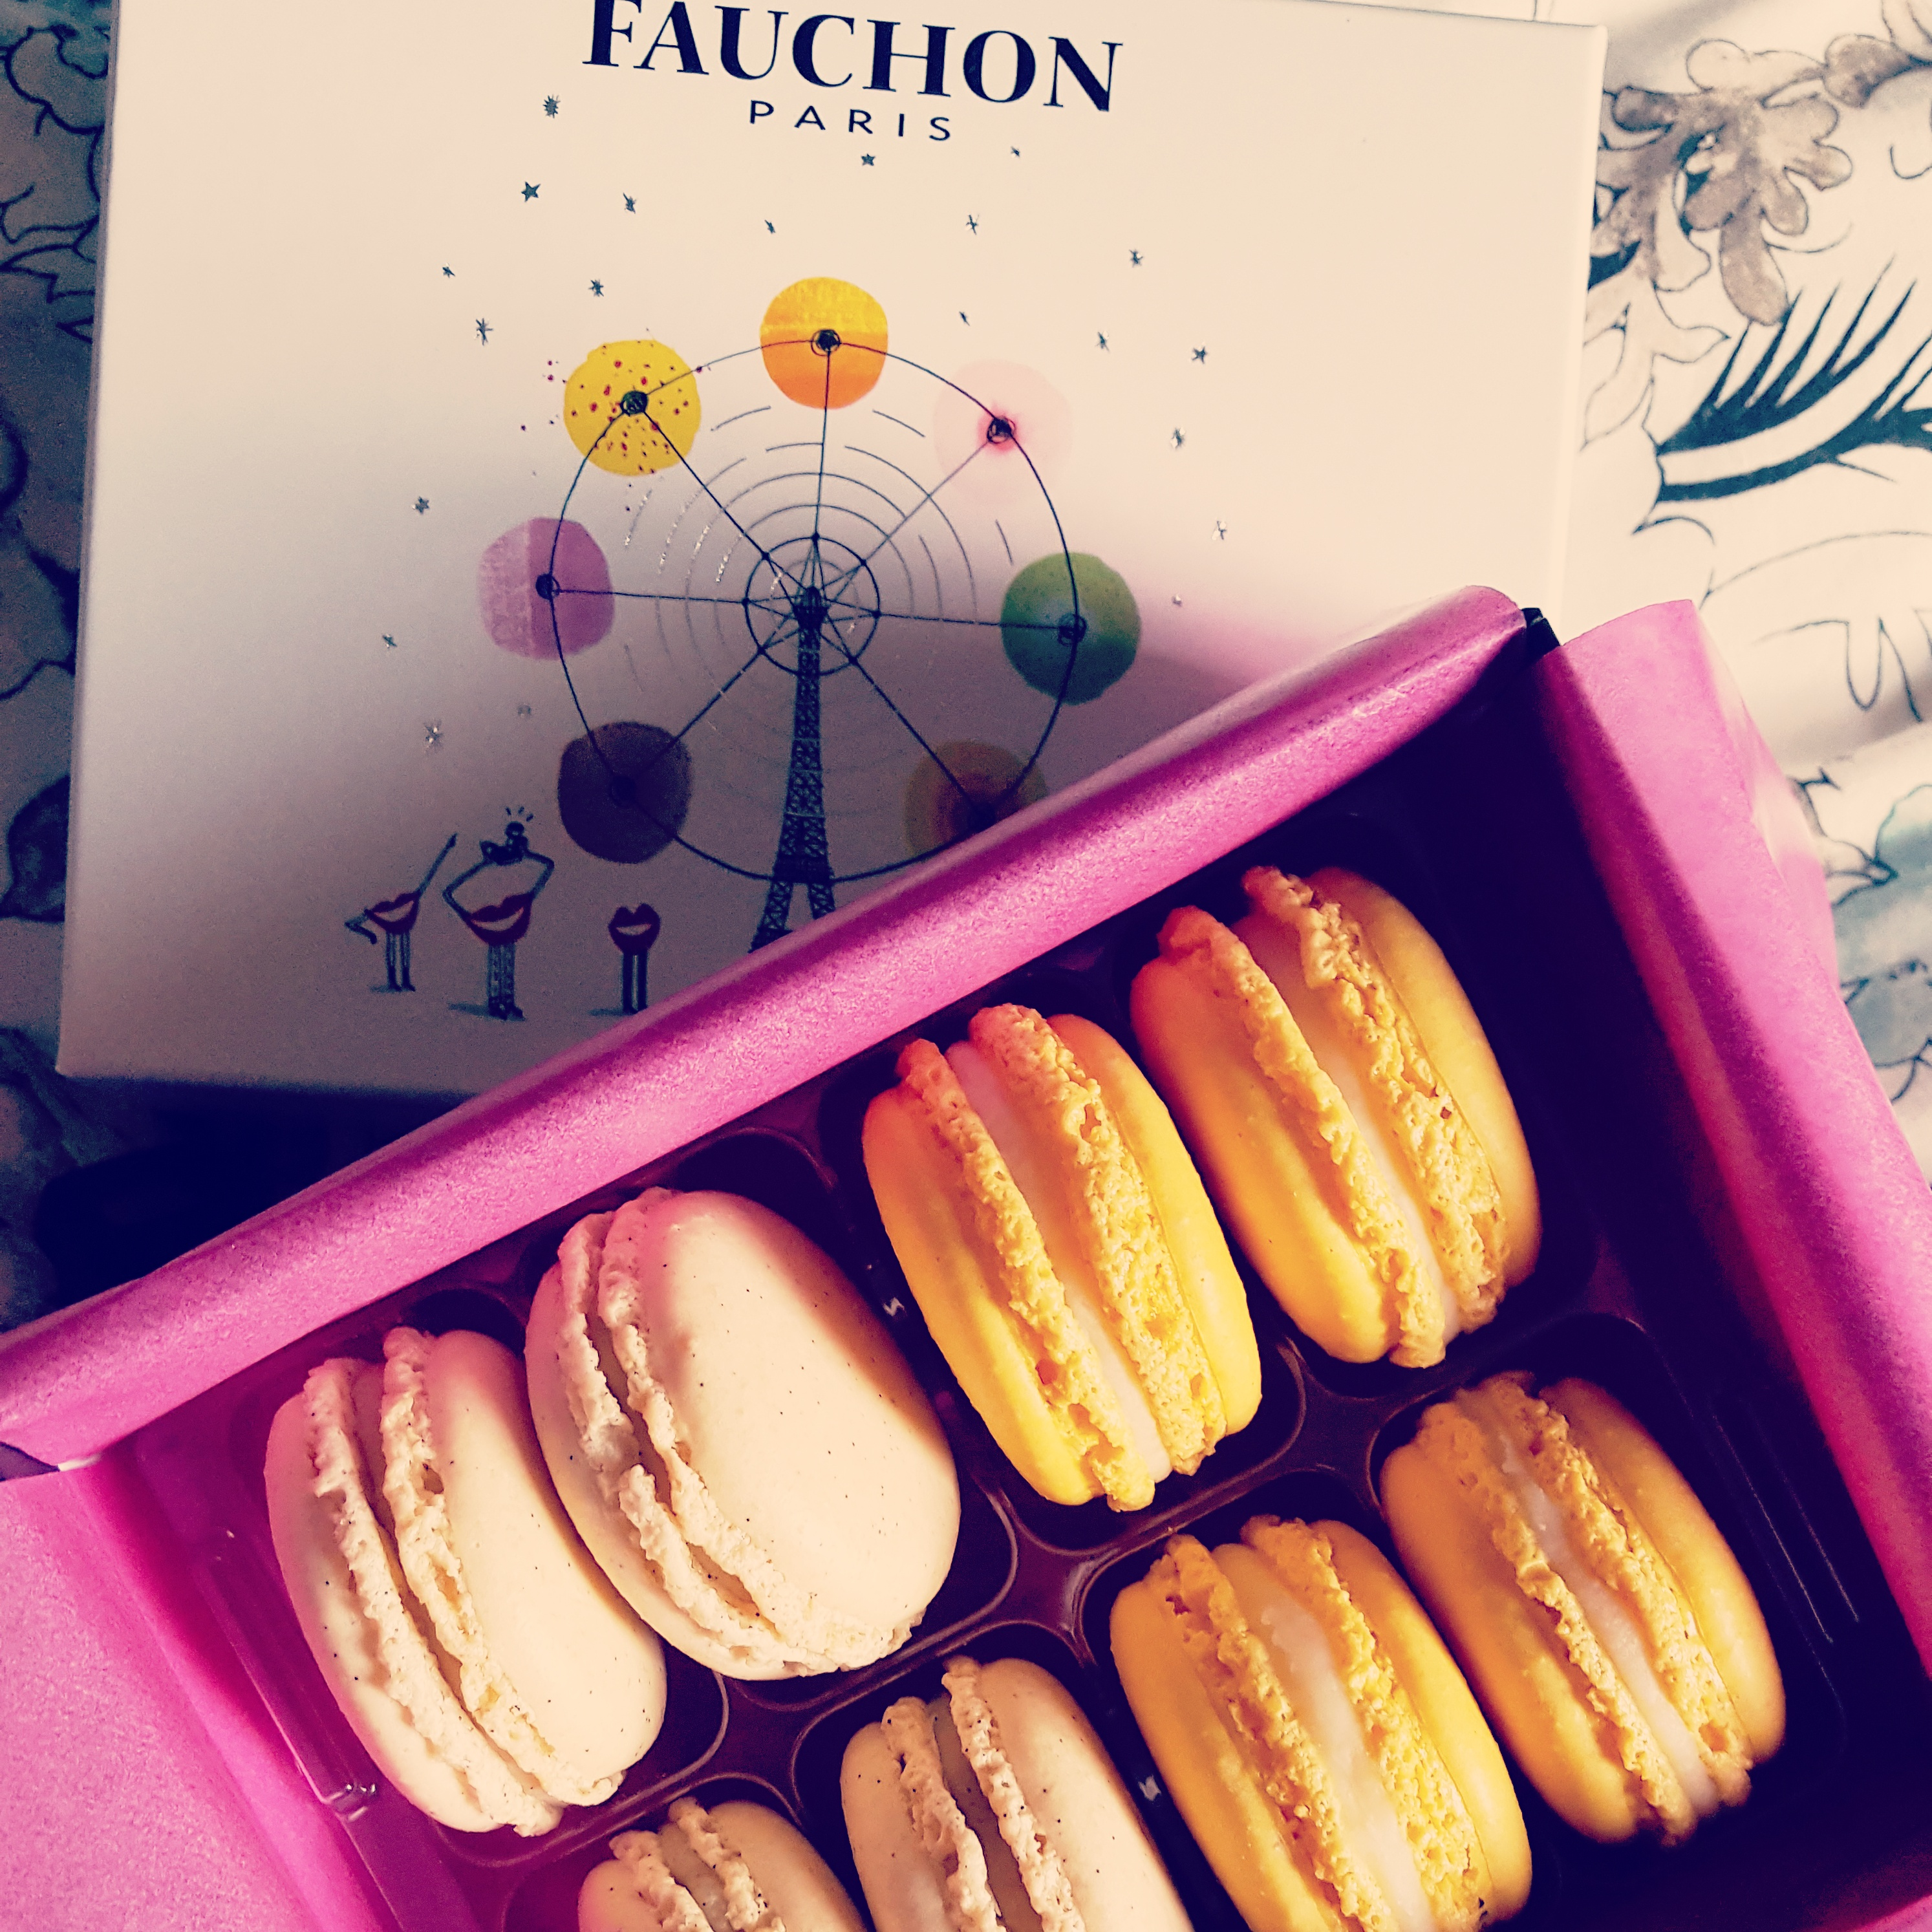 Foodie Finds|| My little pressie from France – Fauchon Paris Macarons